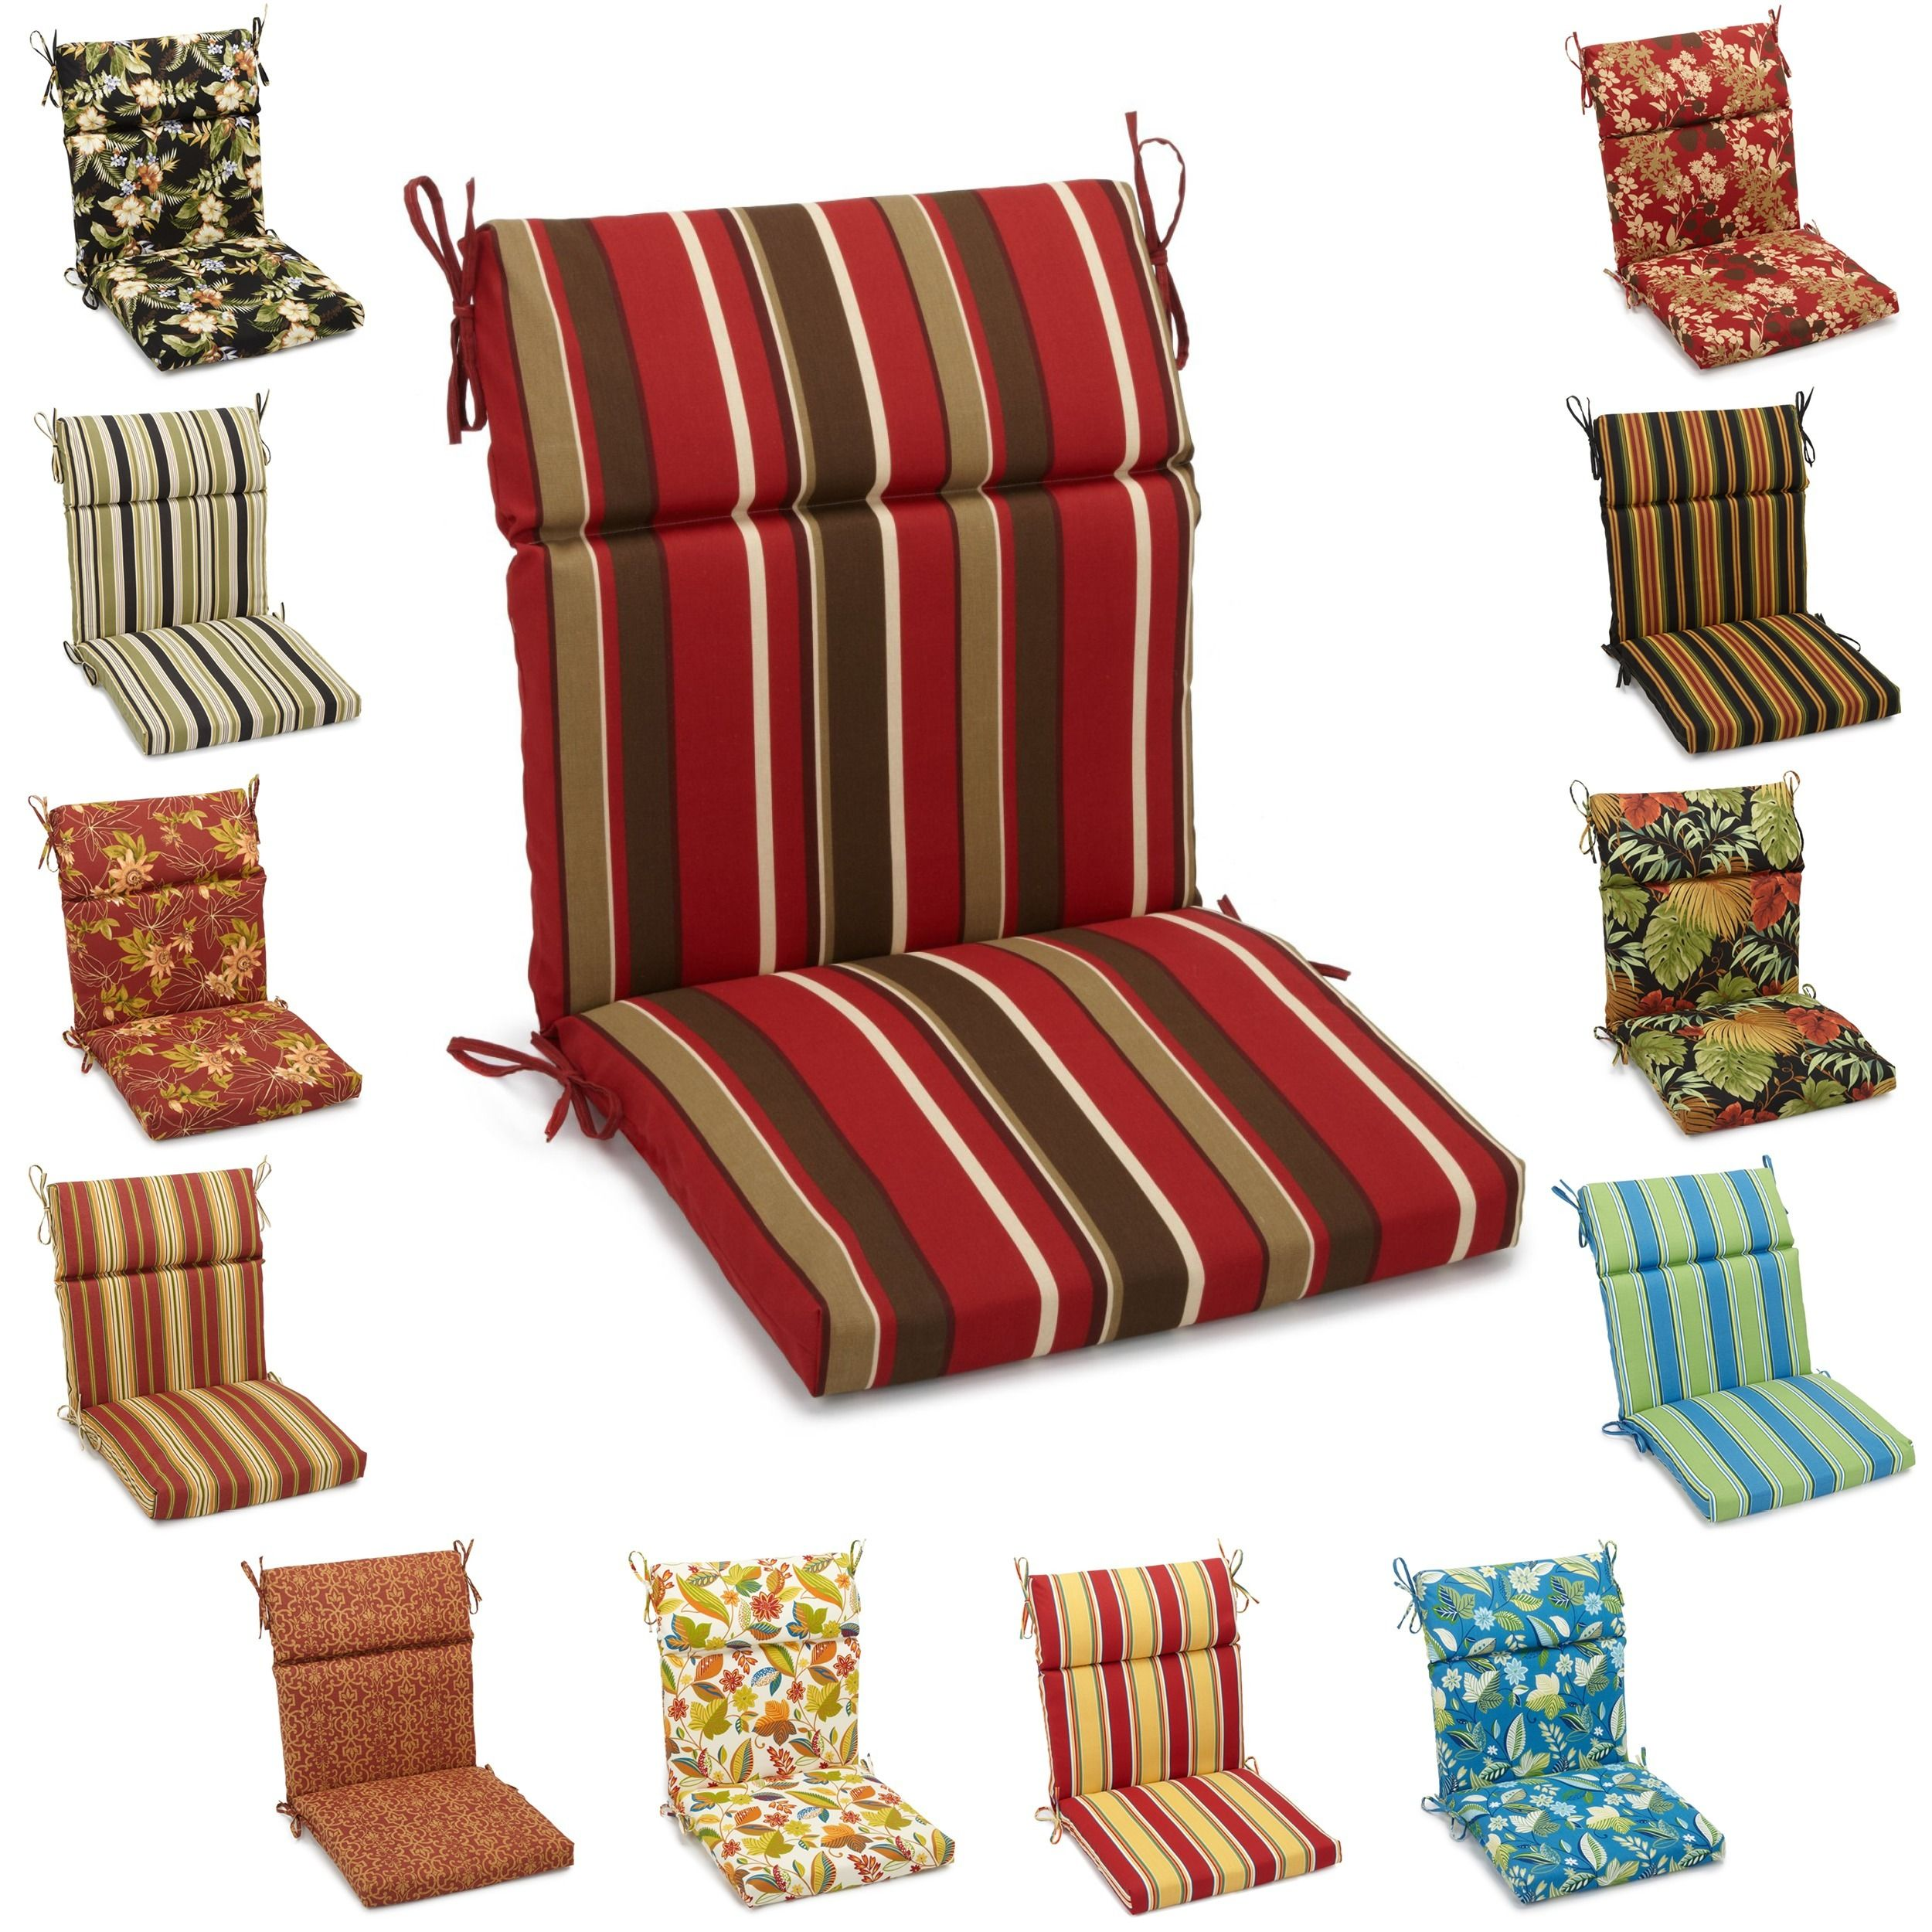 Genial Blazing Needles 42 X 20 Inch Designer Outdoor Chair Cushion (Montserrat  Sangria (REO 33)), Red (Fabric), Outdoor Cushion